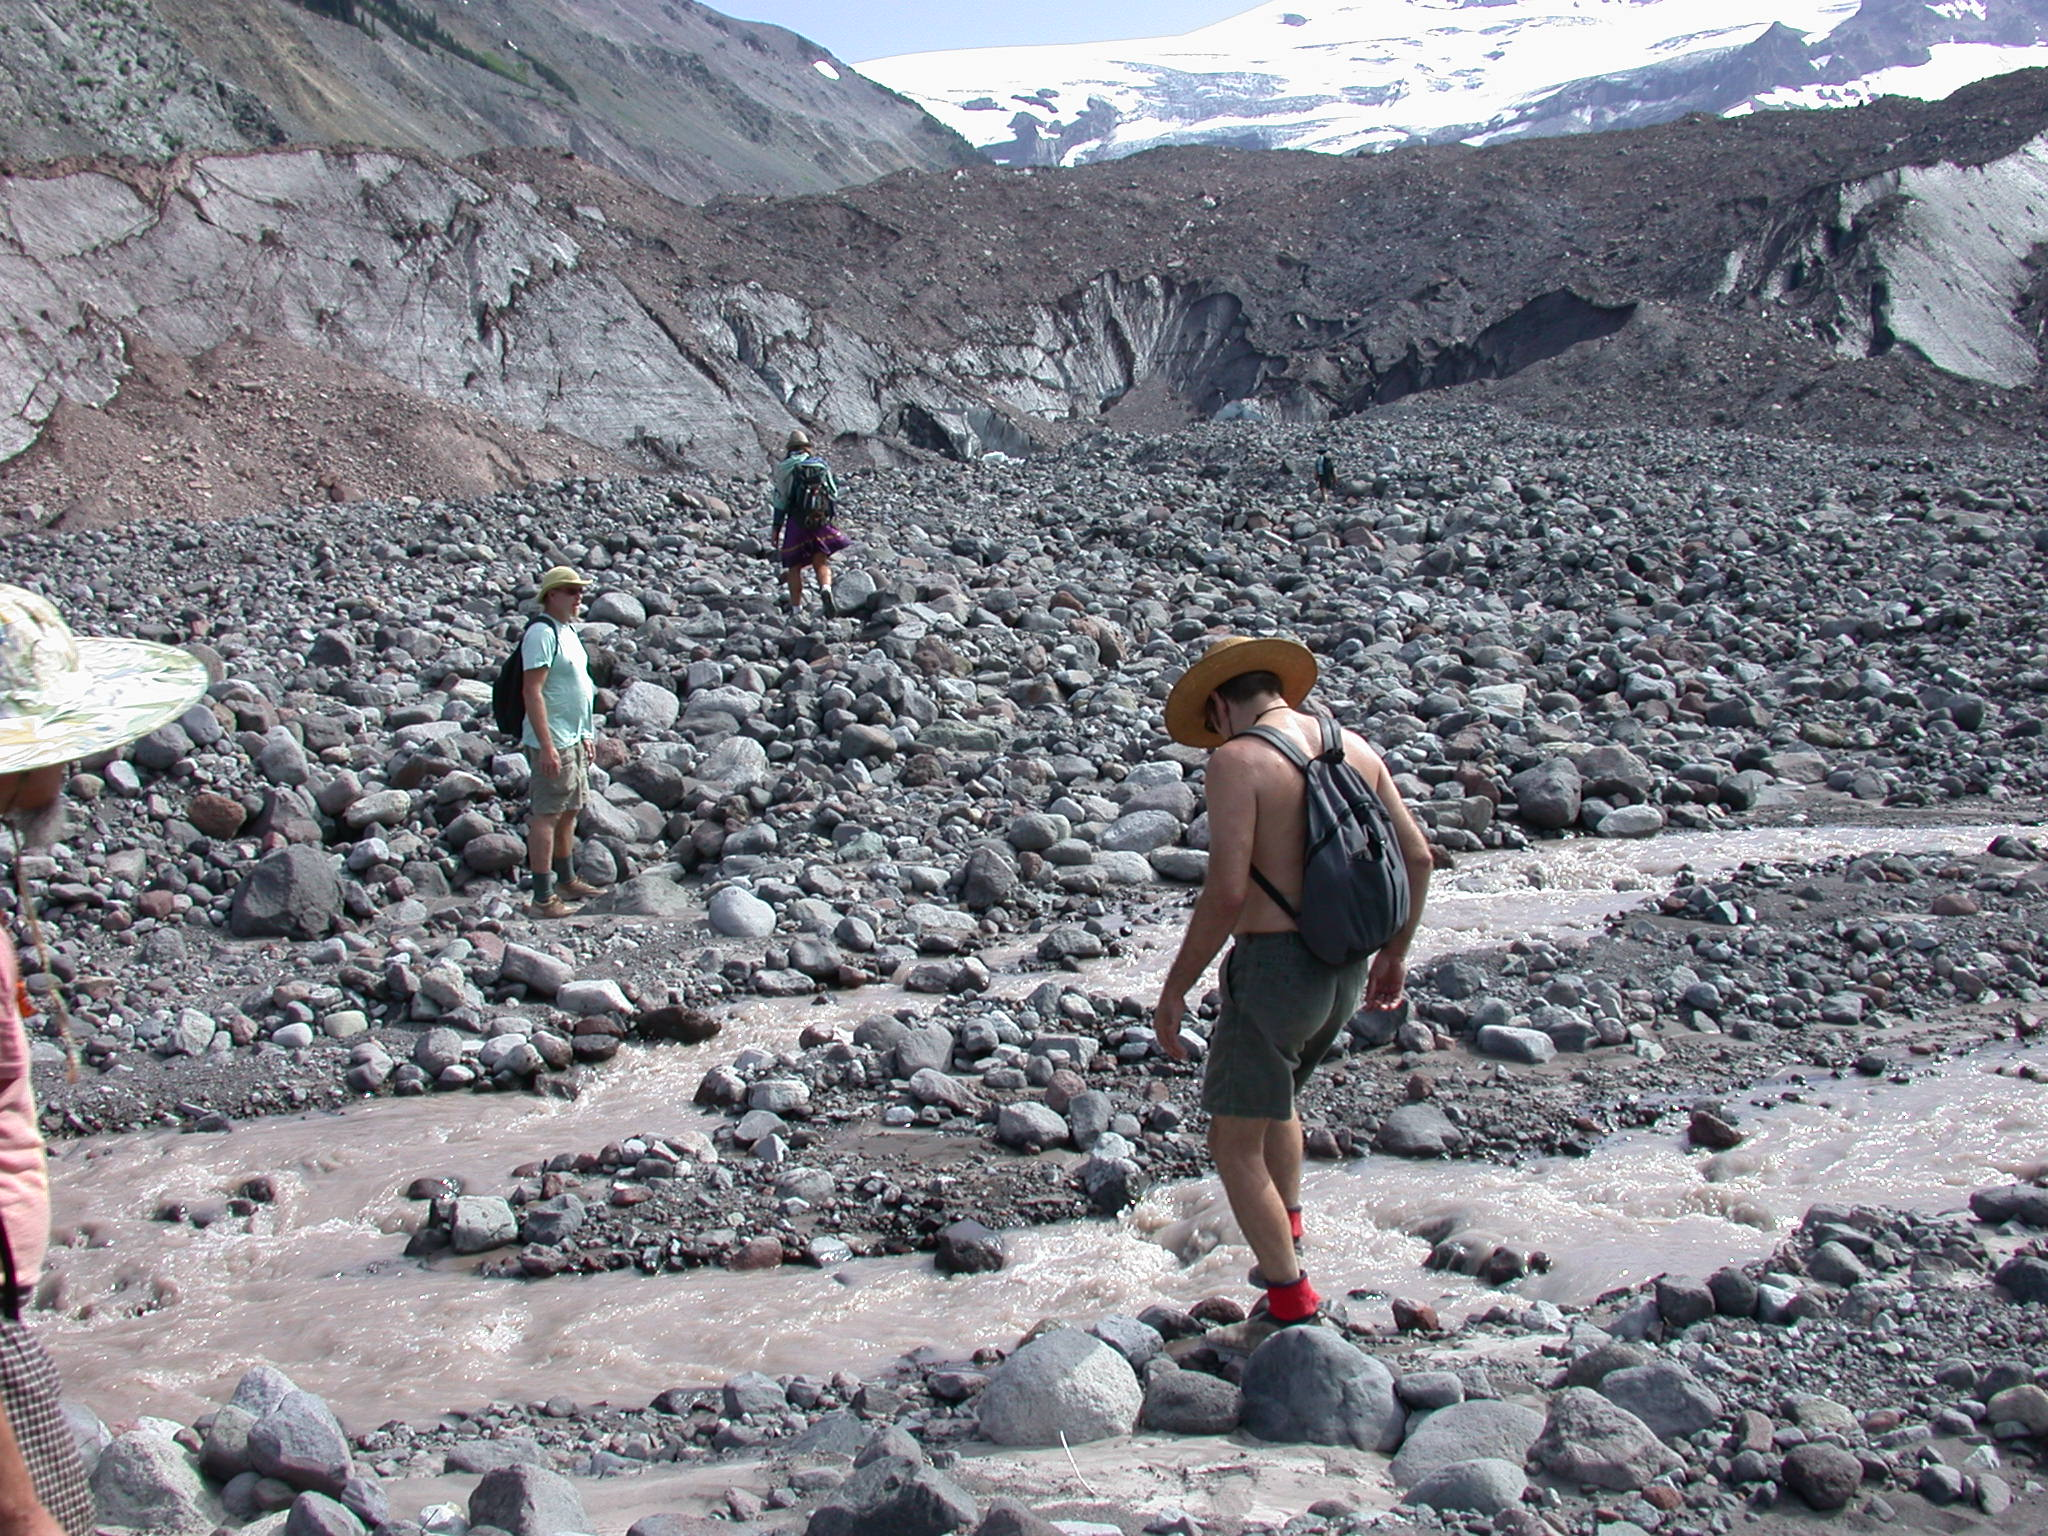 Fruitboy, Dazzle, Tusk, and Mugwort Fording Glacial River on the Way to Glacier Ice Cave on Mount Rainier